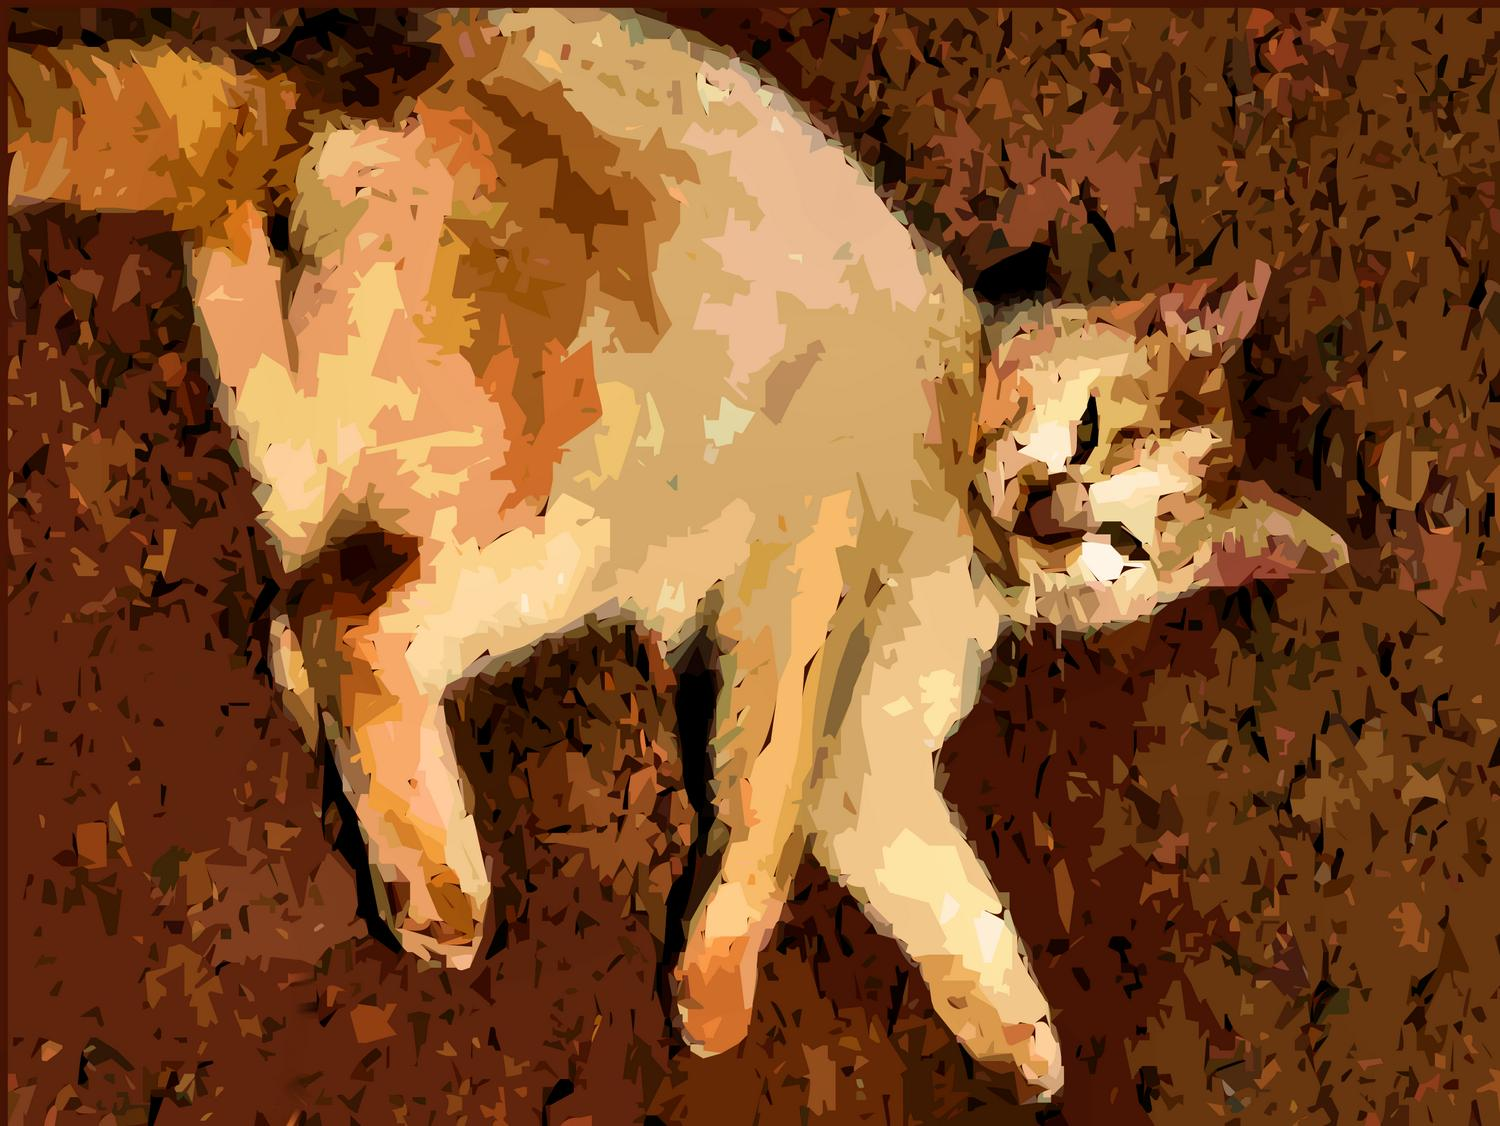 - Barn cat - Techno-Impressionist Museum - Techno-Impressionism - art - beautiful - photo photography picture - by Tony Karp